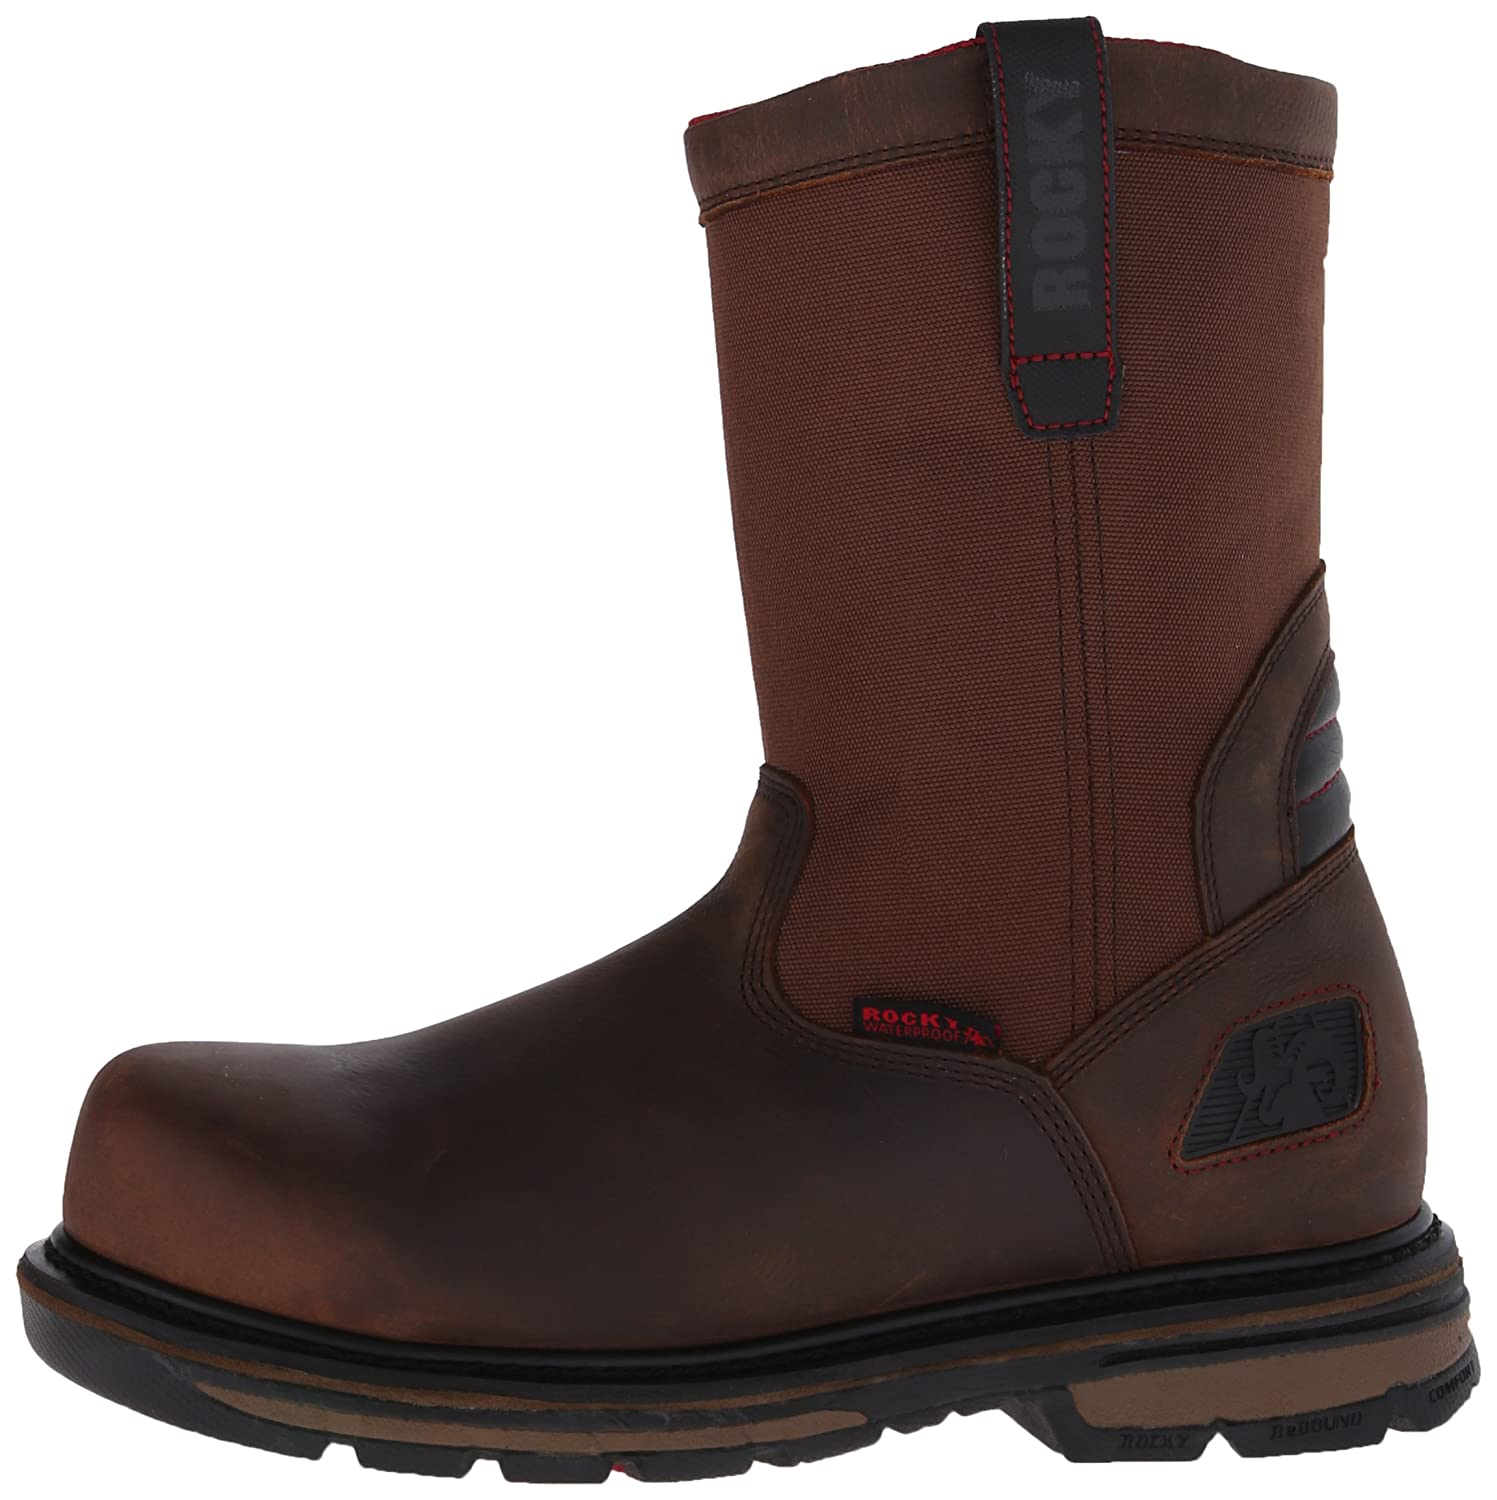 e79d405bdac Rocky Men's 10 Inch Hauler Composite Toe Work Boot